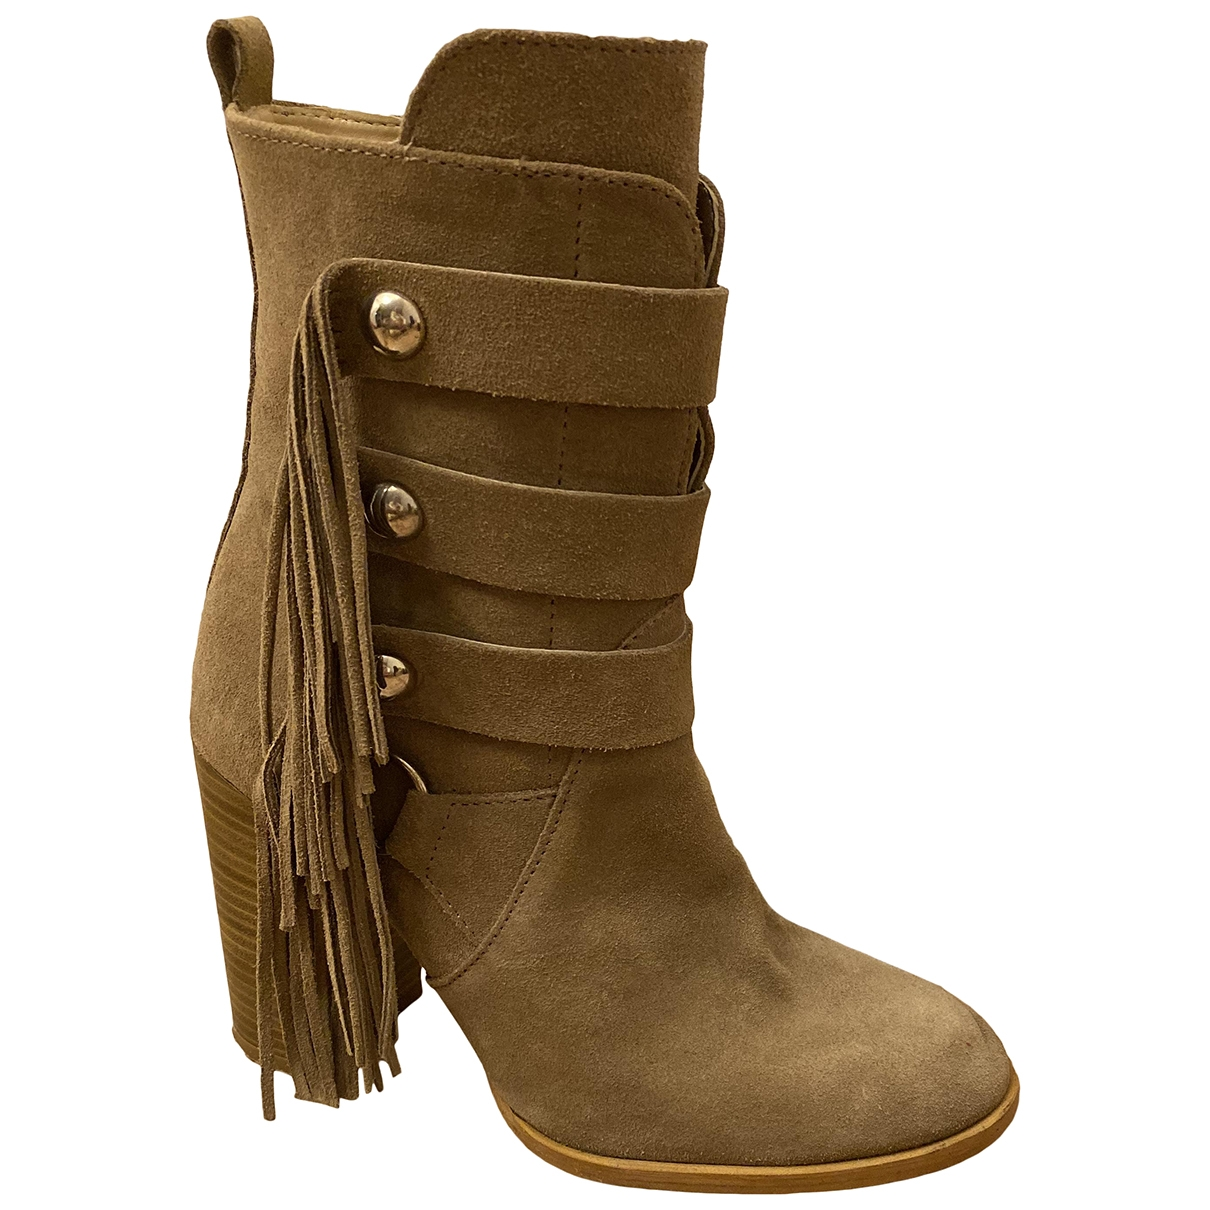 Zara \N Beige Suede Boots for Women 37 EU